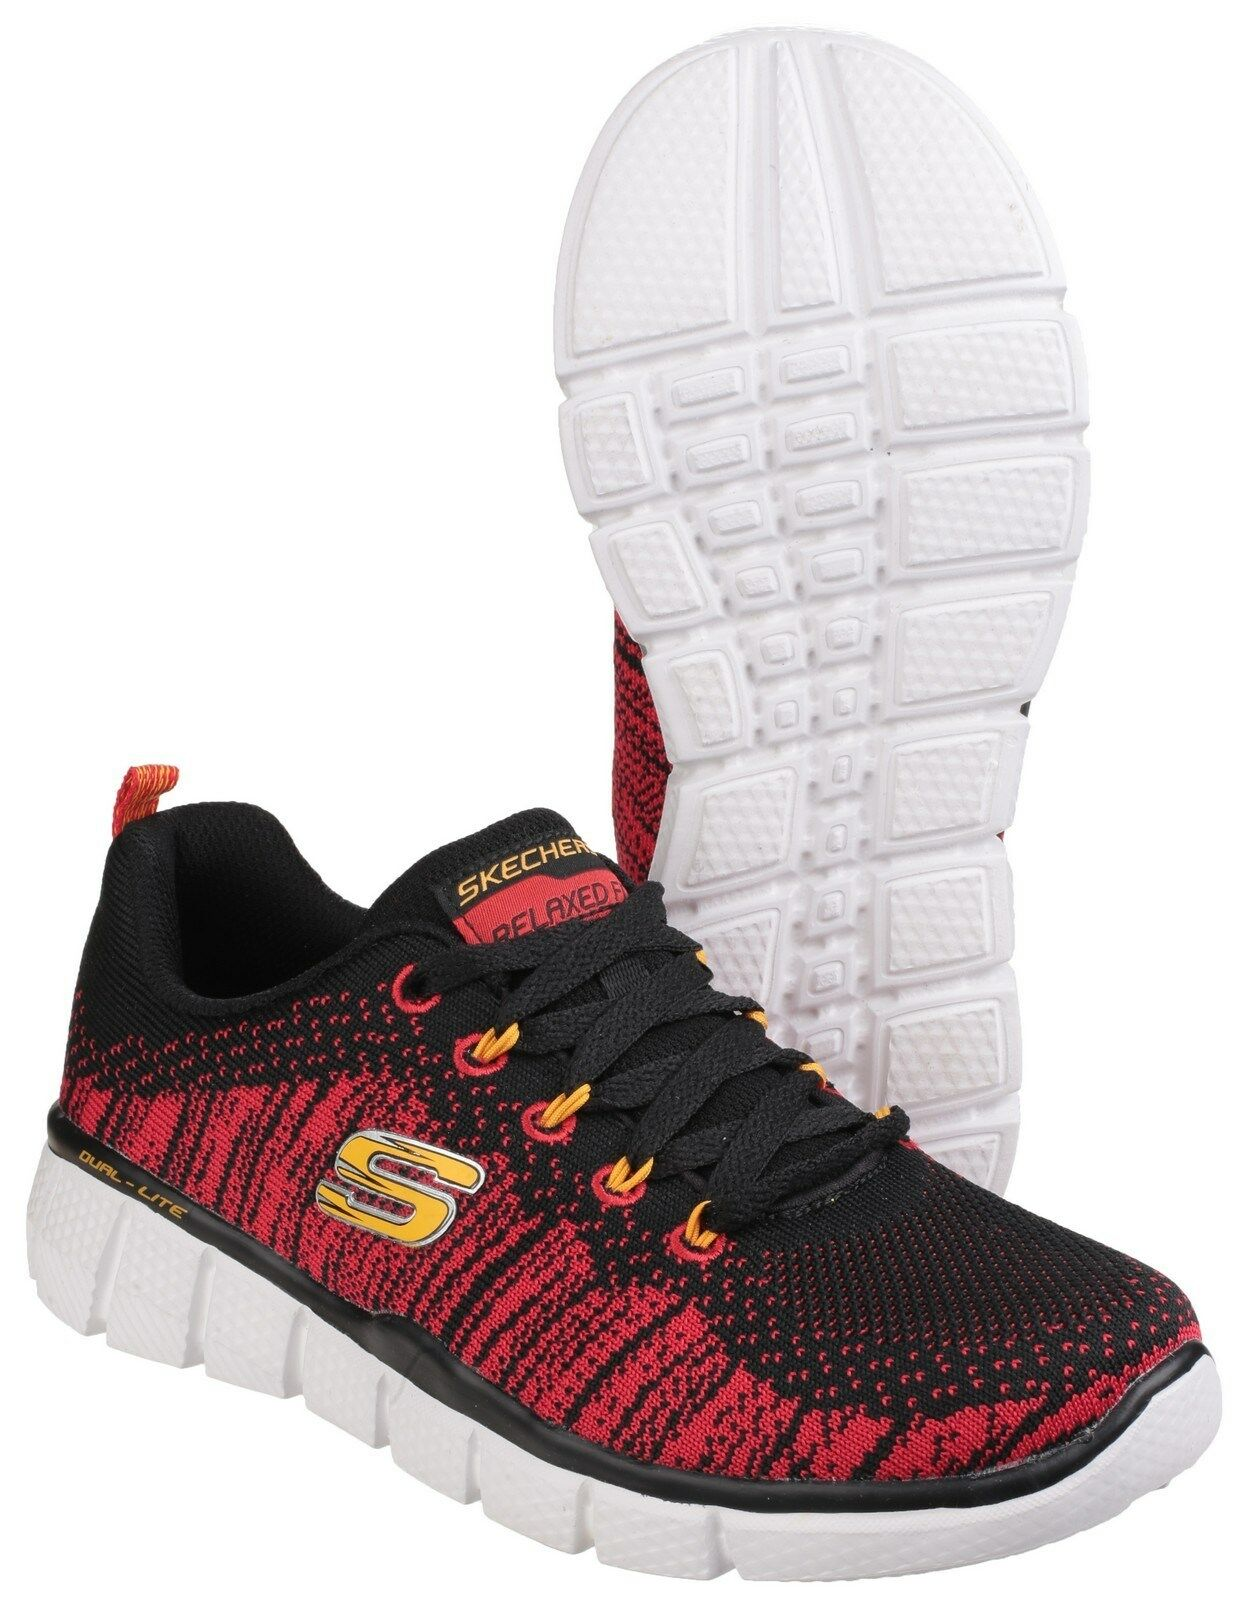 hot sale online 83d9c 1b732 Skechers Equalizer 2.0 Perfect Game Kids Boys Athletic Trainers Shoes  UK10.5-6